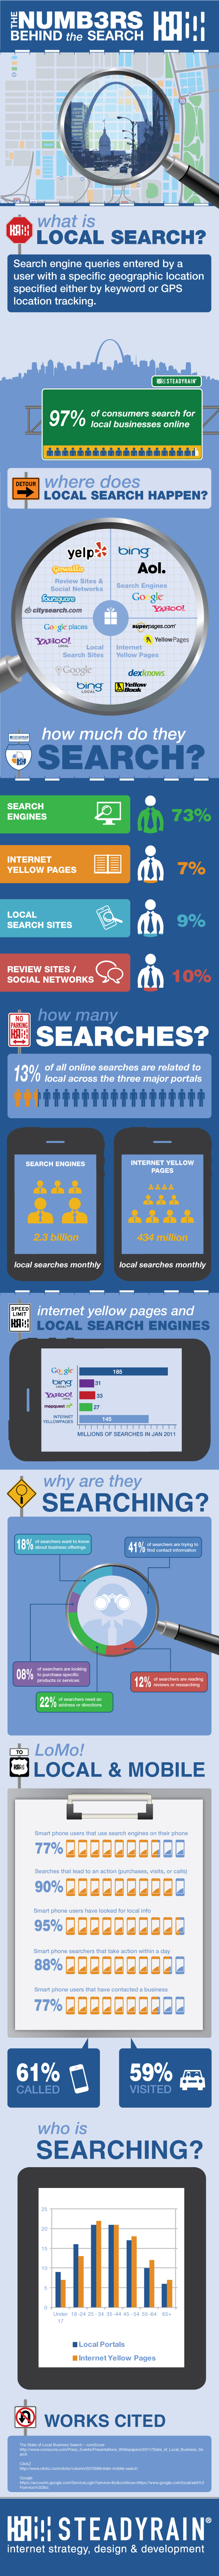 http://www.amplifylocalmarketing.com/wp-content/uploads/2012/07/Local_Search_InfoGraphic_final.jpg